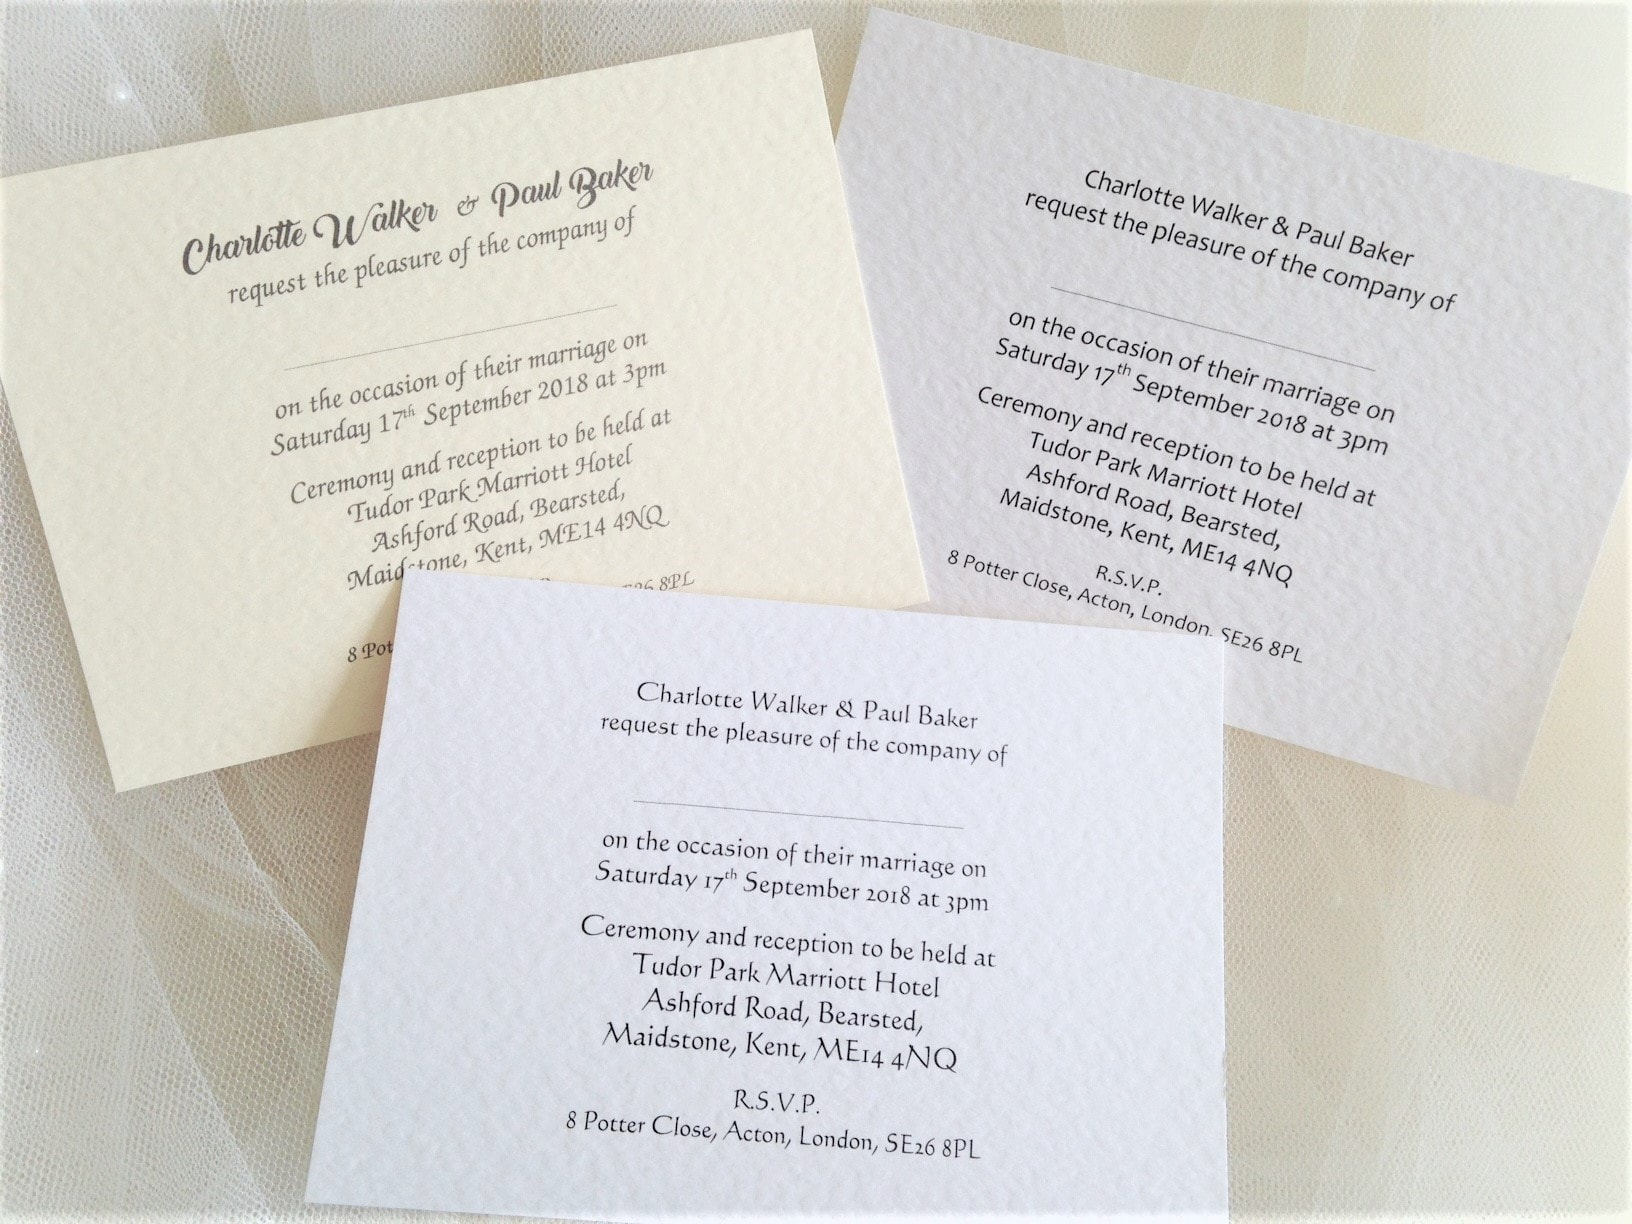 Cheap Invites For Wedding: Affordable Wedding Invites